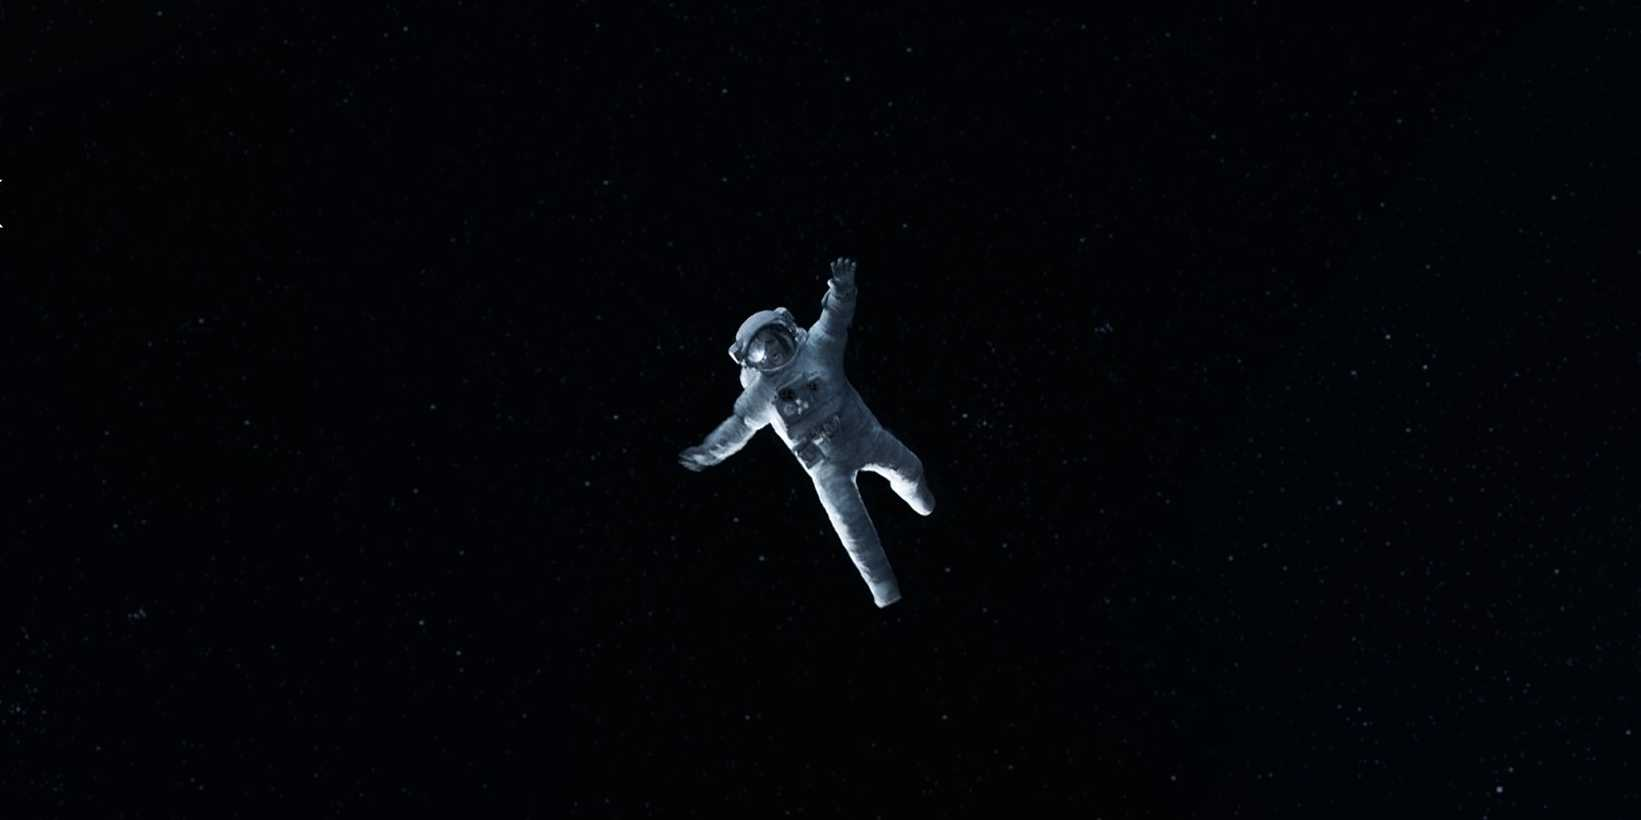 astronaut from gravity - photo #41